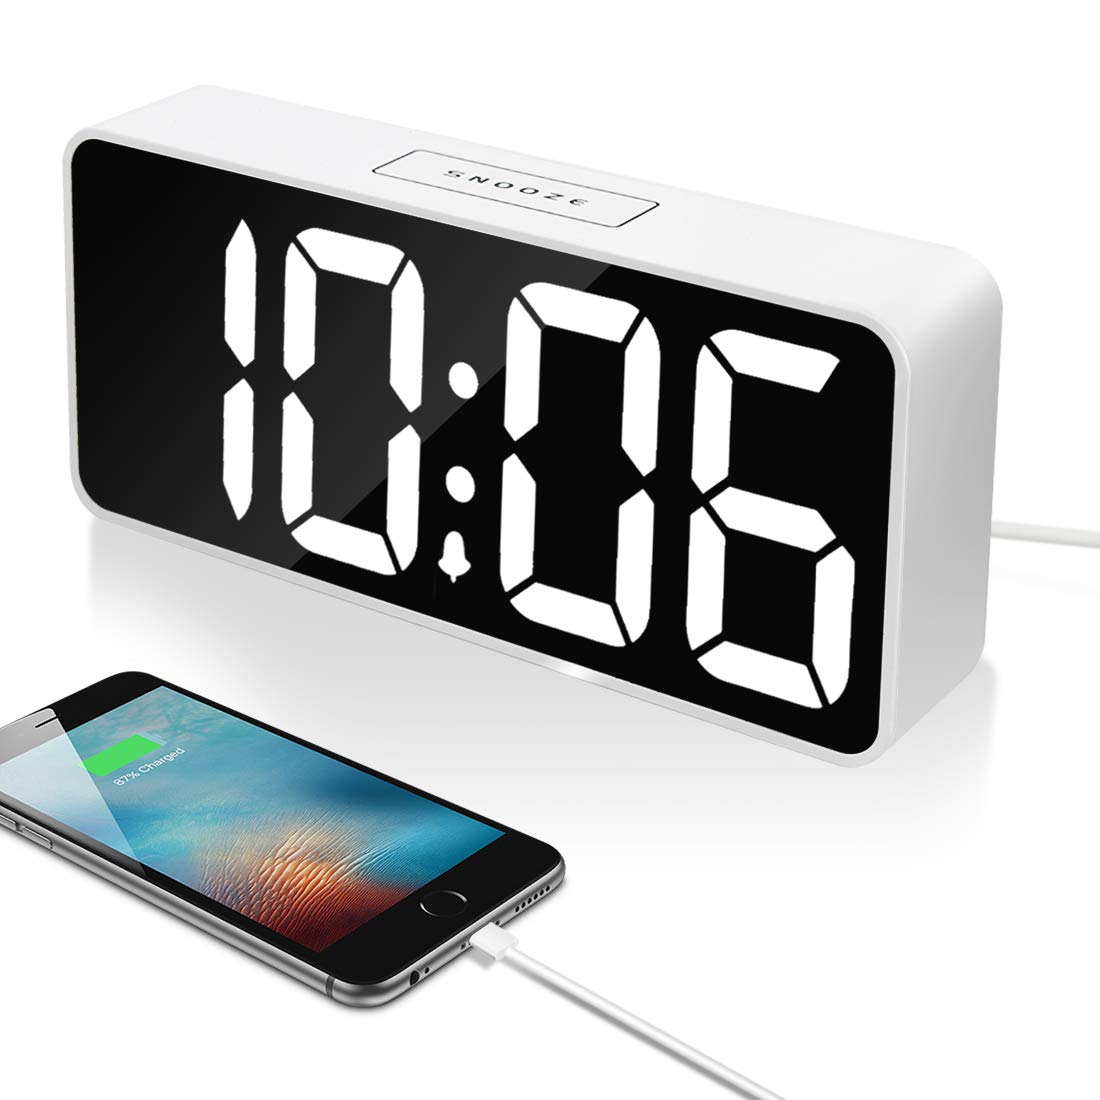 9'' Large LED Digital Alarm Clock with USB Port for Phone Charger, 0-100% Dimmer, Touch-Activated Dimmer, Outlet Powered (White)